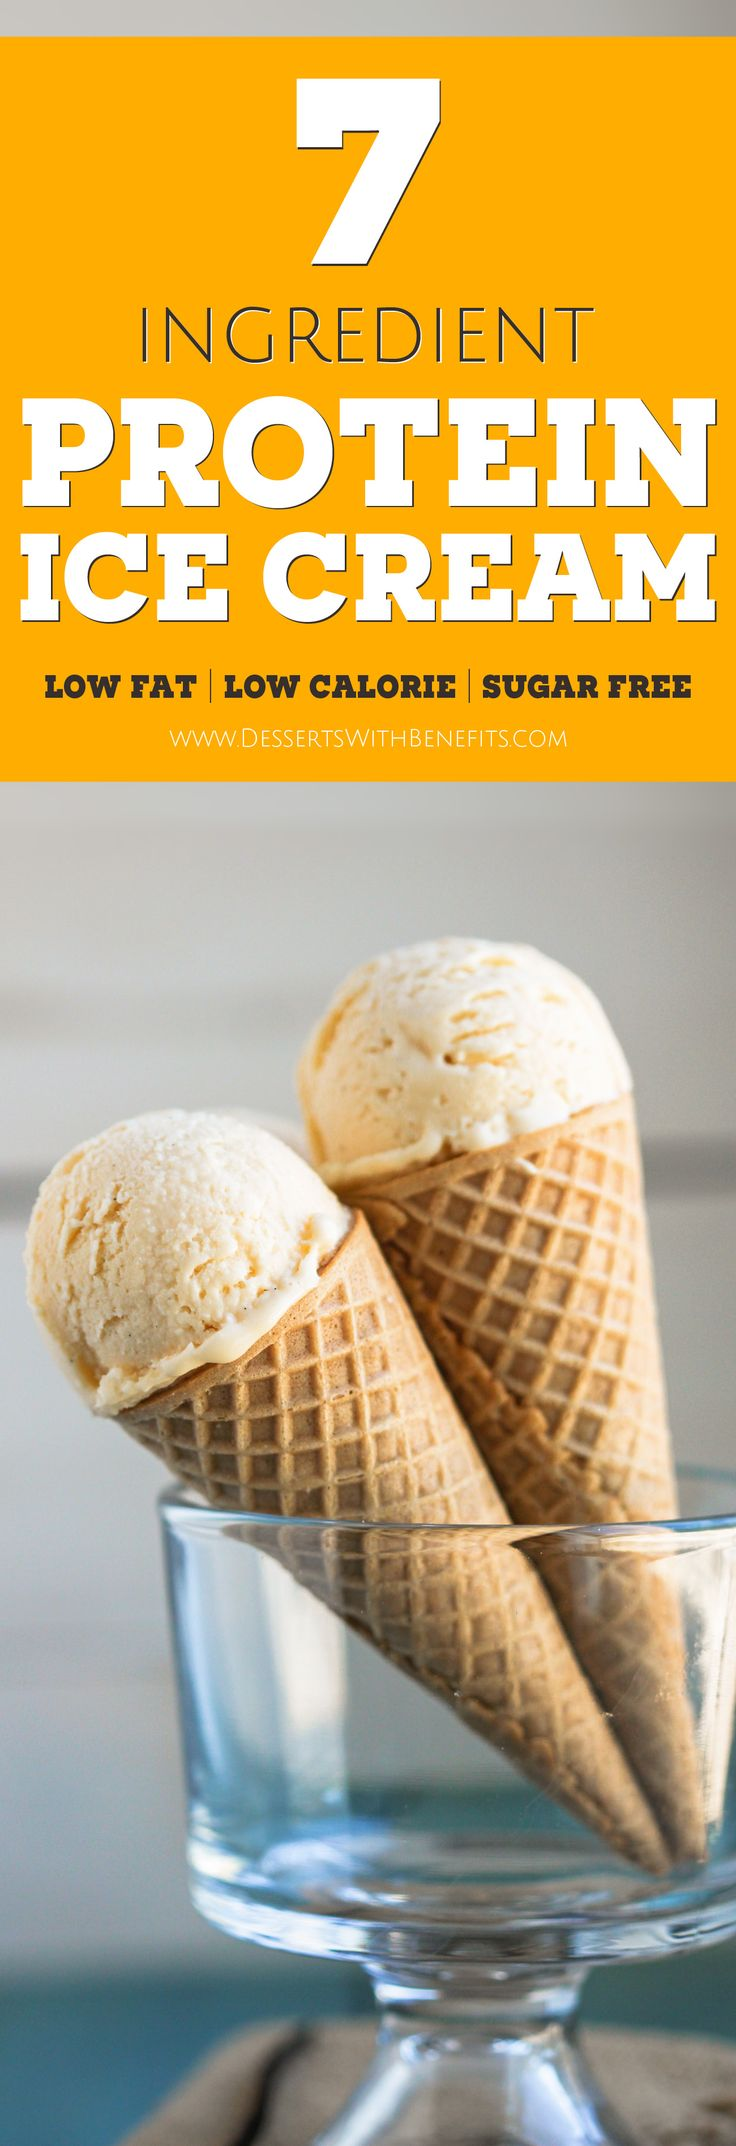 This sweet, creamy, and mouthwatering Healthy Vanilla Protein Ice Cream is refined sugar free, low carb, and low fat, but you would NEVER ever ever suspect it.